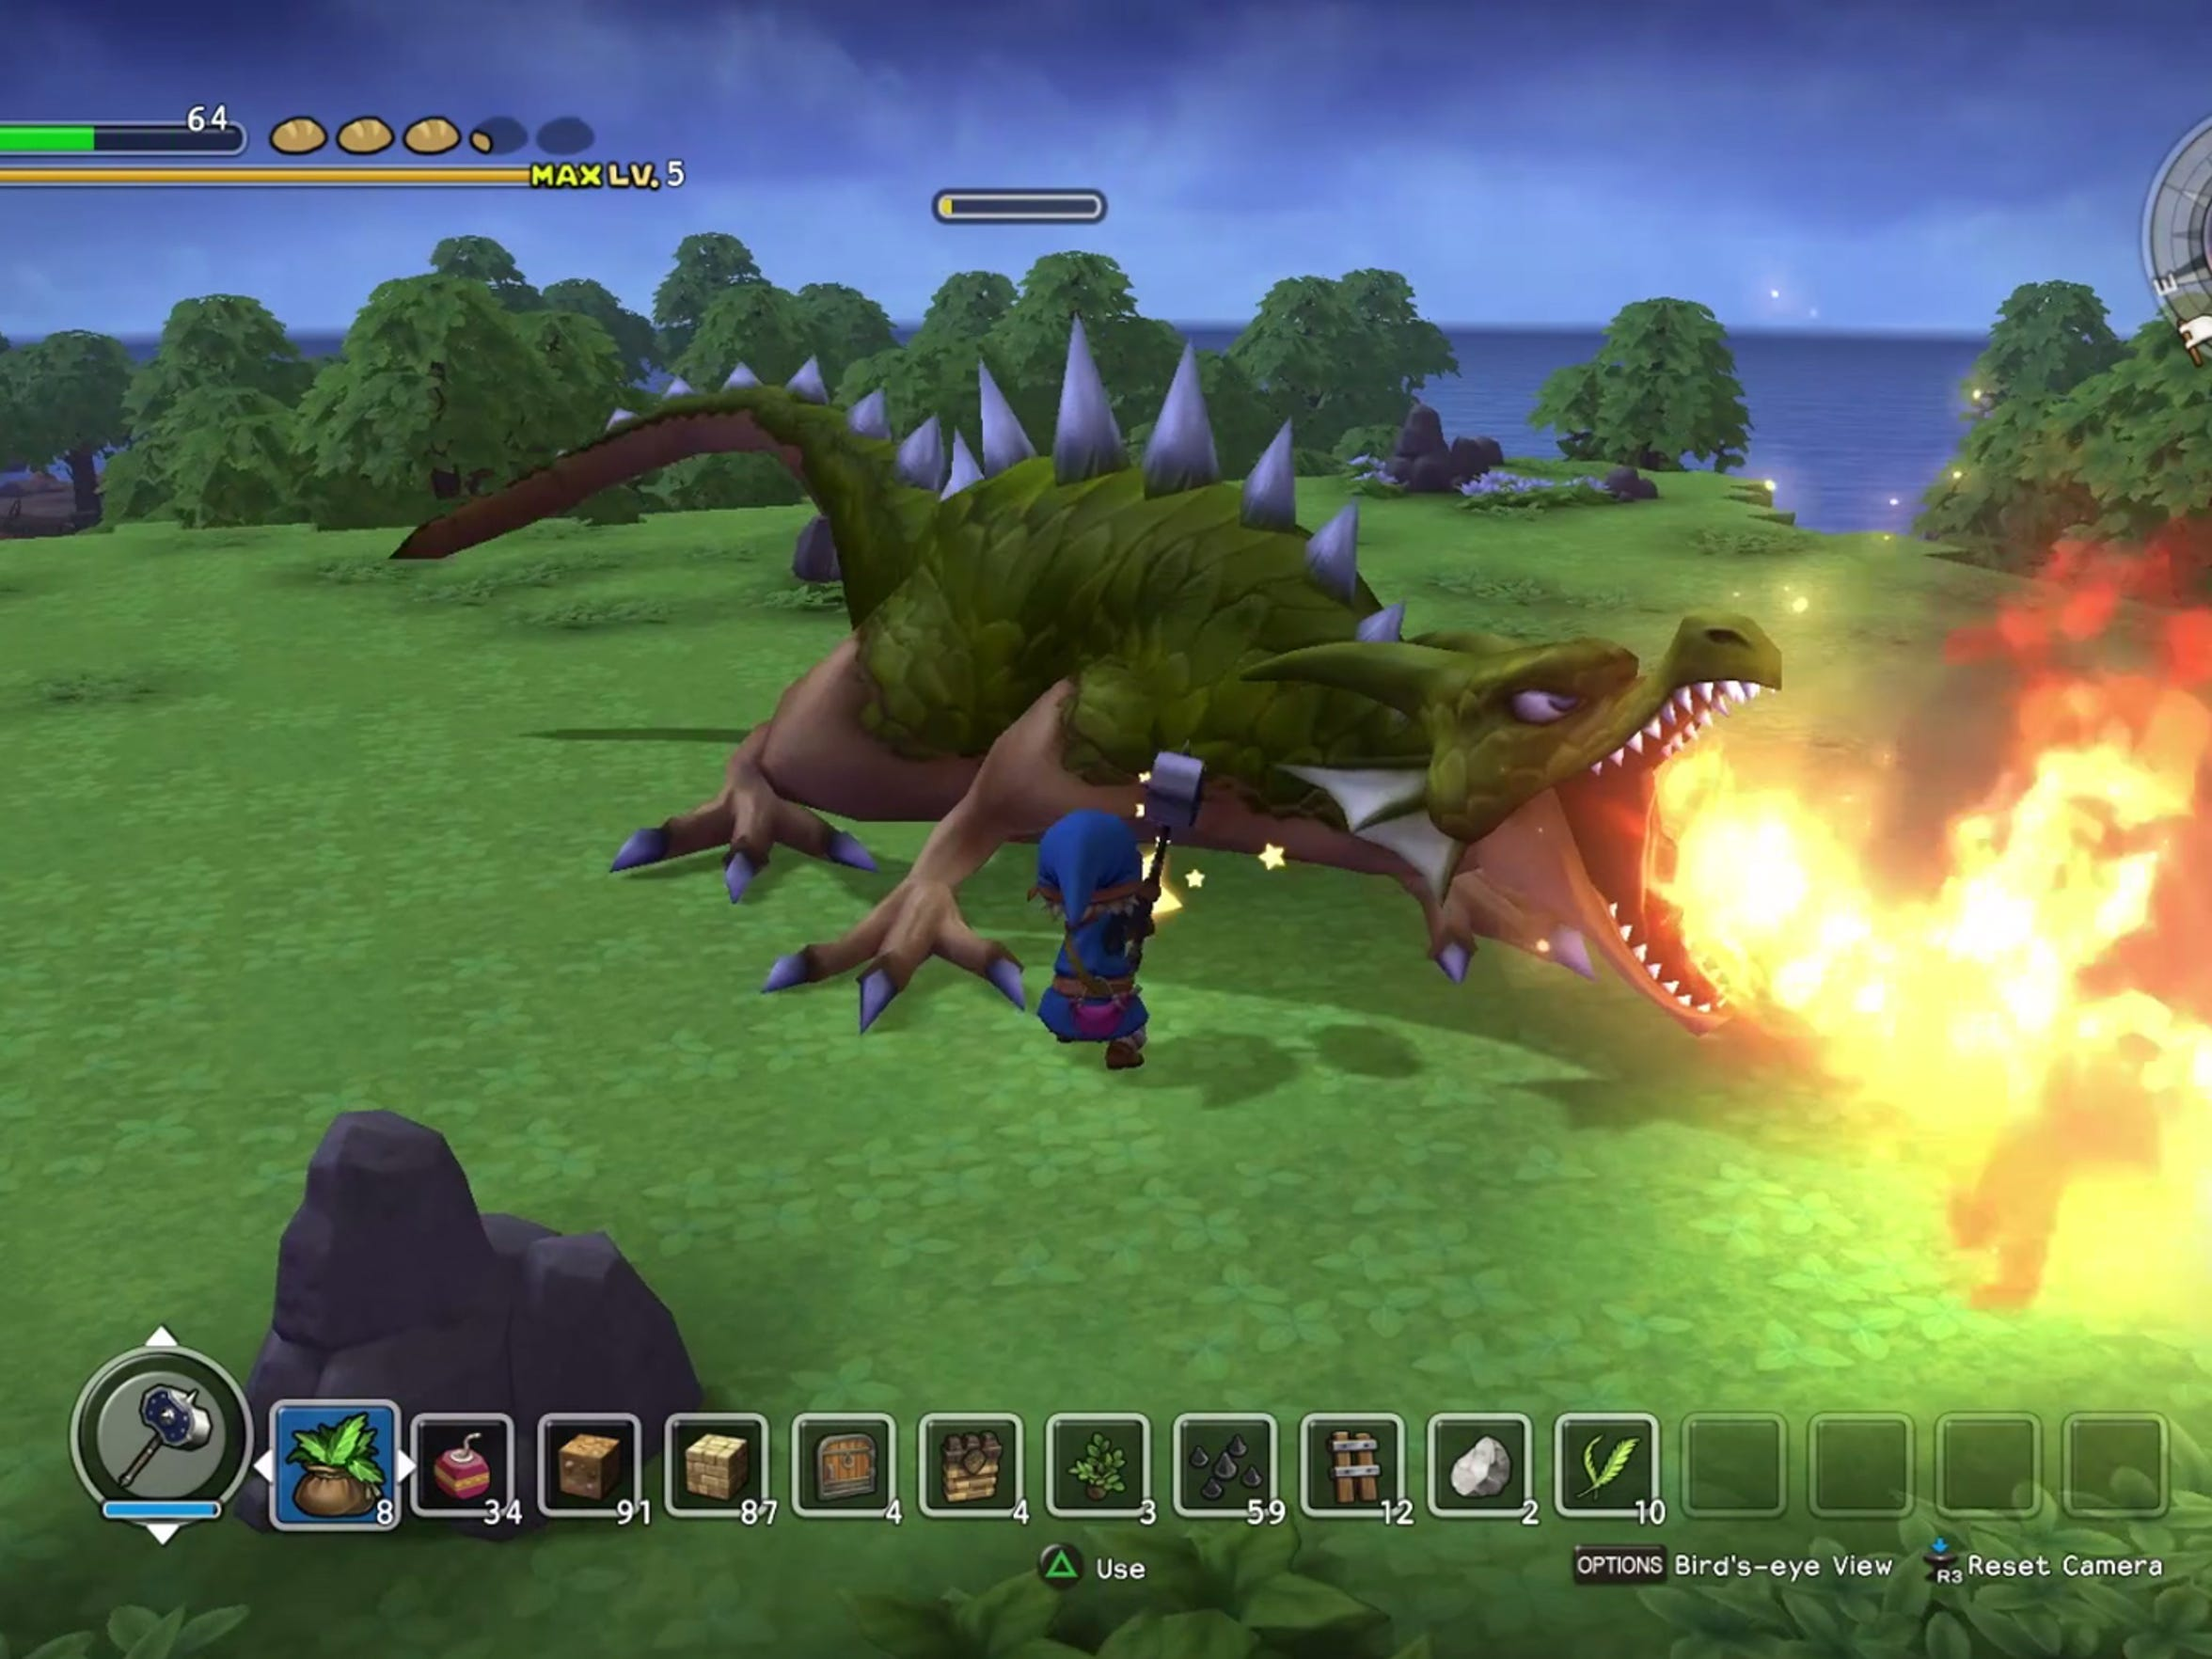 It's called Dragon Quest for a reason. Fight dragons